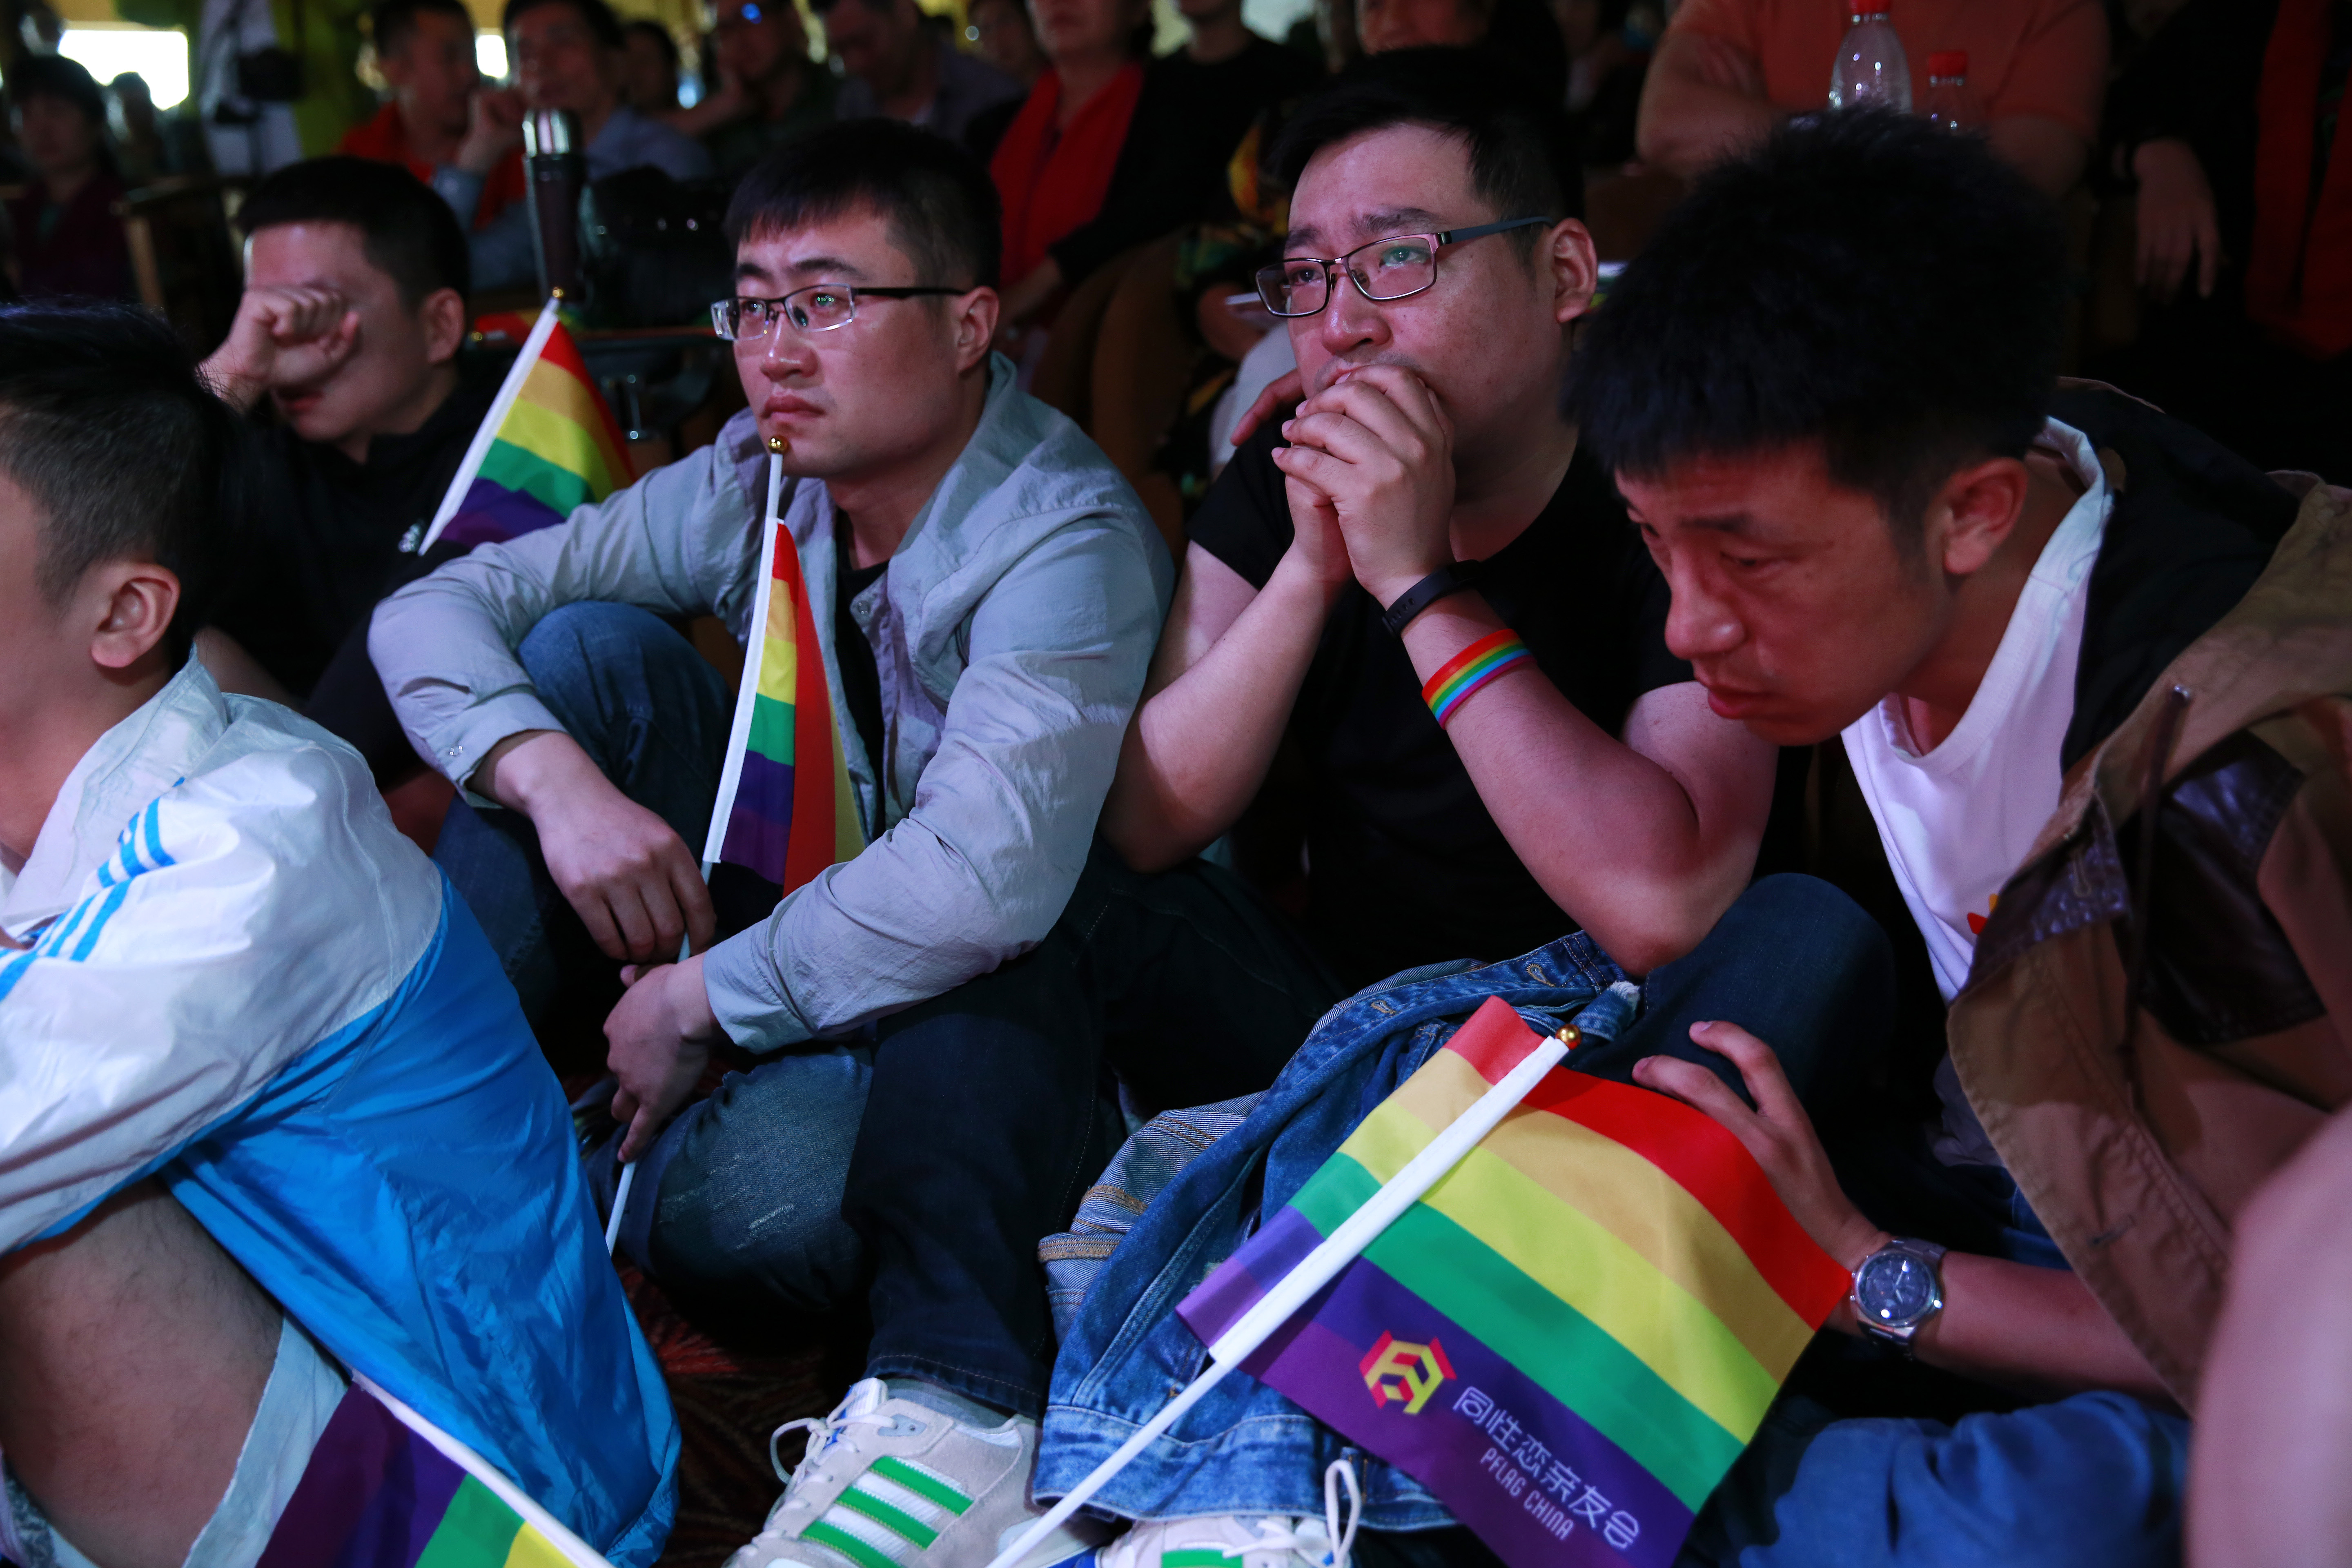 epa06037466 (22/34) Chinese gay men Da Zhi (R), Tank (2-R) and Xiao Rui reacts while listening to experiences shared by a lesbian Ding Limei and her mother comforts during a forum for LGBTs (lesbian, gay, bisexual and transgender) and their parents organised by the Parents and Friends of Lesbians and Gays (PFLAG) China organisation on a cruise in open seas on route to Sasebo, Japan, 15 June 2017. About 800 members of the Chinese LGBT (lesbian, gay, bisexual and transgender) community and their parents spent four days on a cruise trip organised by Parents and Friends of Lesbians and Gays (PFLAG) China, a grassroots non-government organisation, celebrating the 10th anniversary of the organisation. It aims to promote coexistence among homosexuals and their families. EPA/HOW HWEE YOUNG CHINA OUT ATTENTION: For the full PHOTO ESSAY text please see Advisory Notice epa06037443